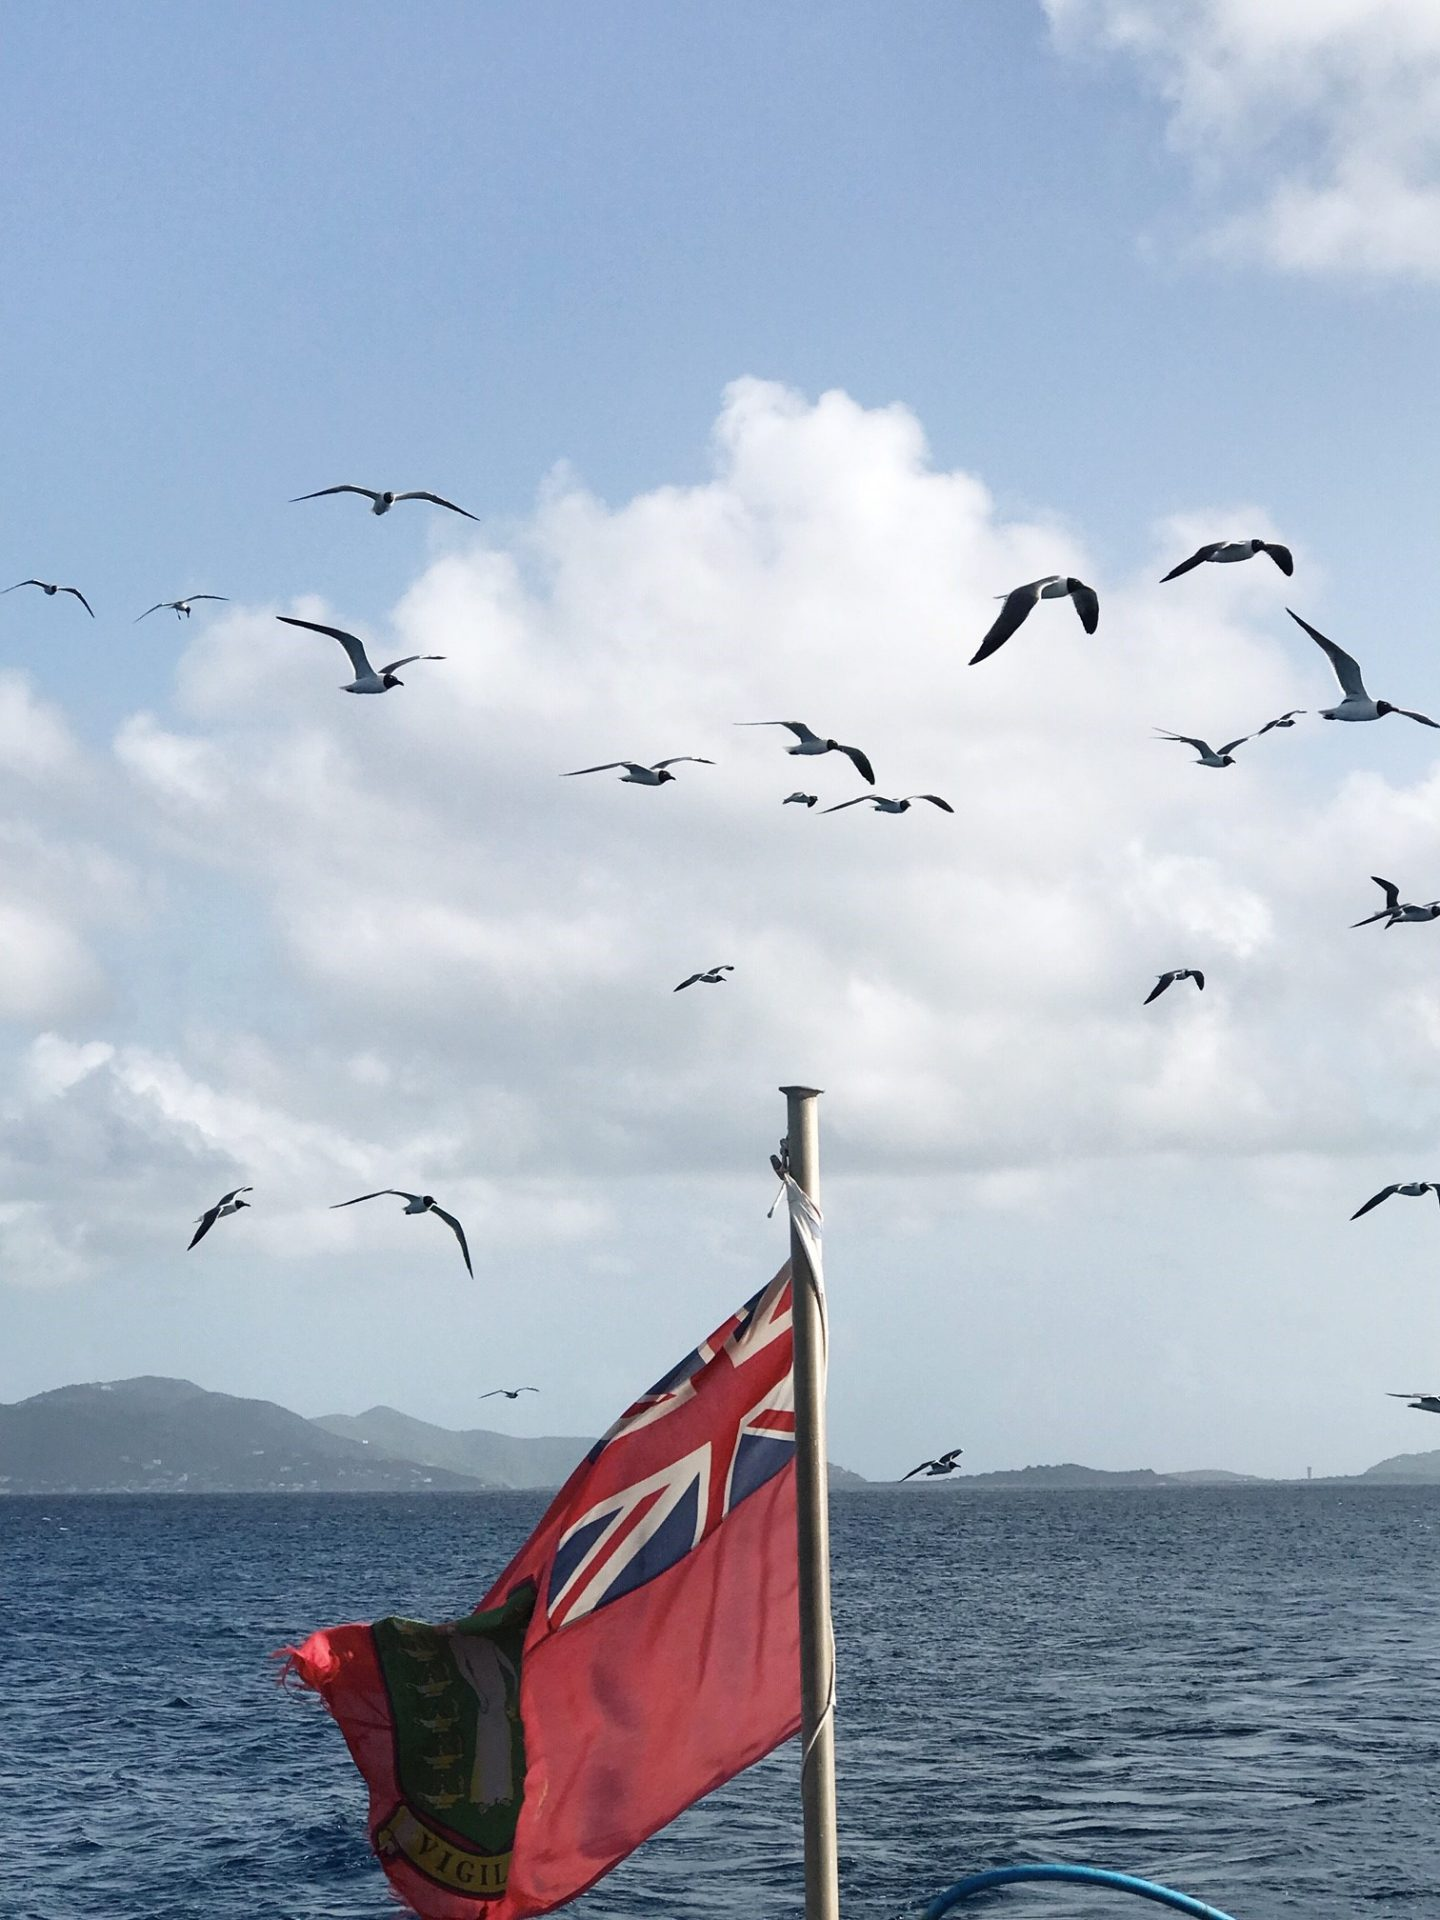 BVI Sailing - Exploring the British Virgin Islands aboard Cuan Law